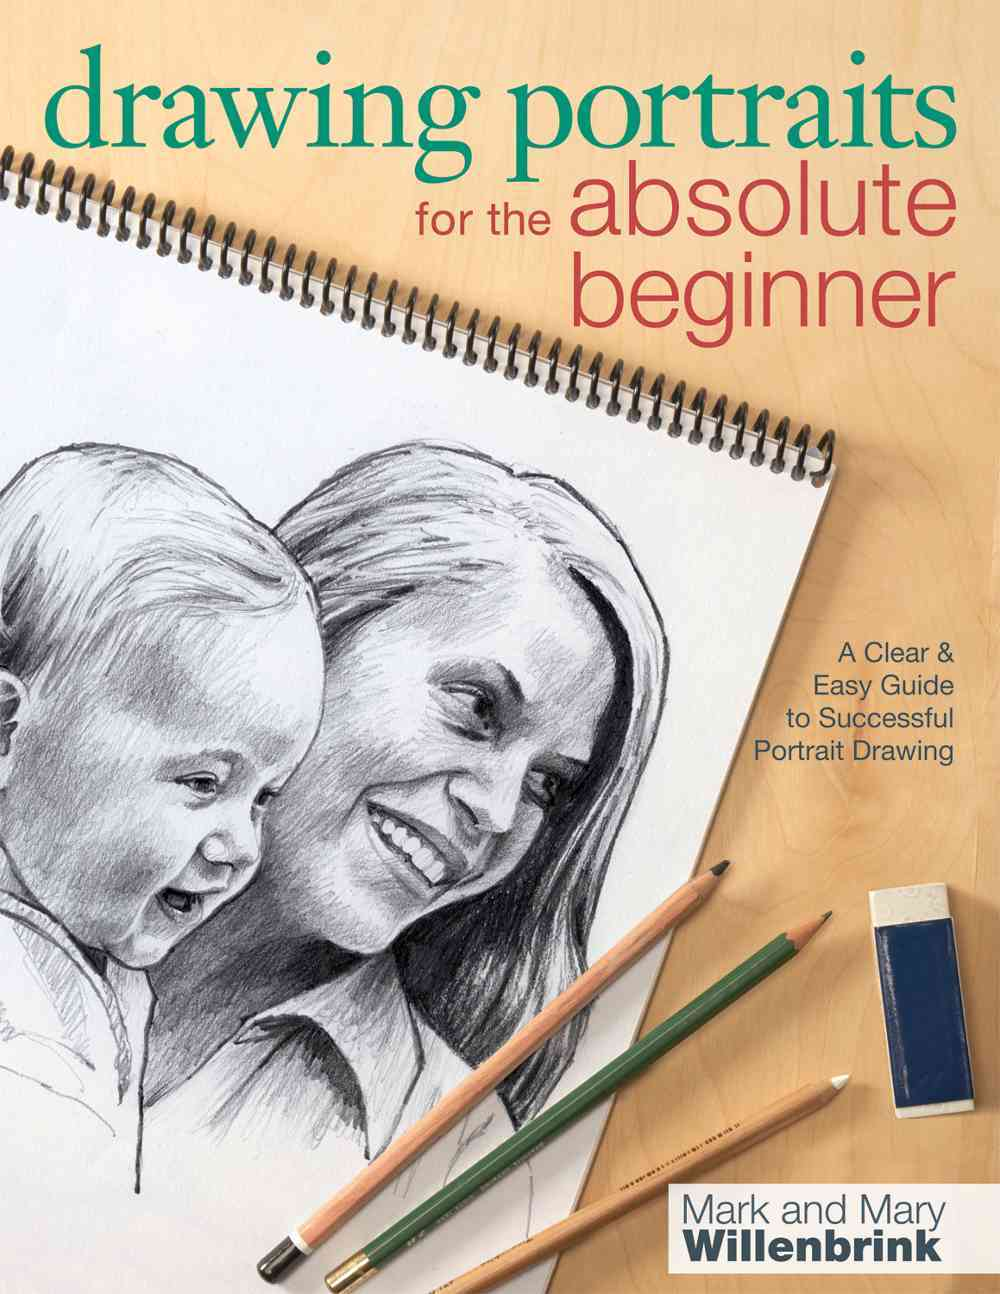 Drawing Portraits for the Absolute Beginner: A Clear & Easy Guide to Successful Portrait Drawing (Paperback)